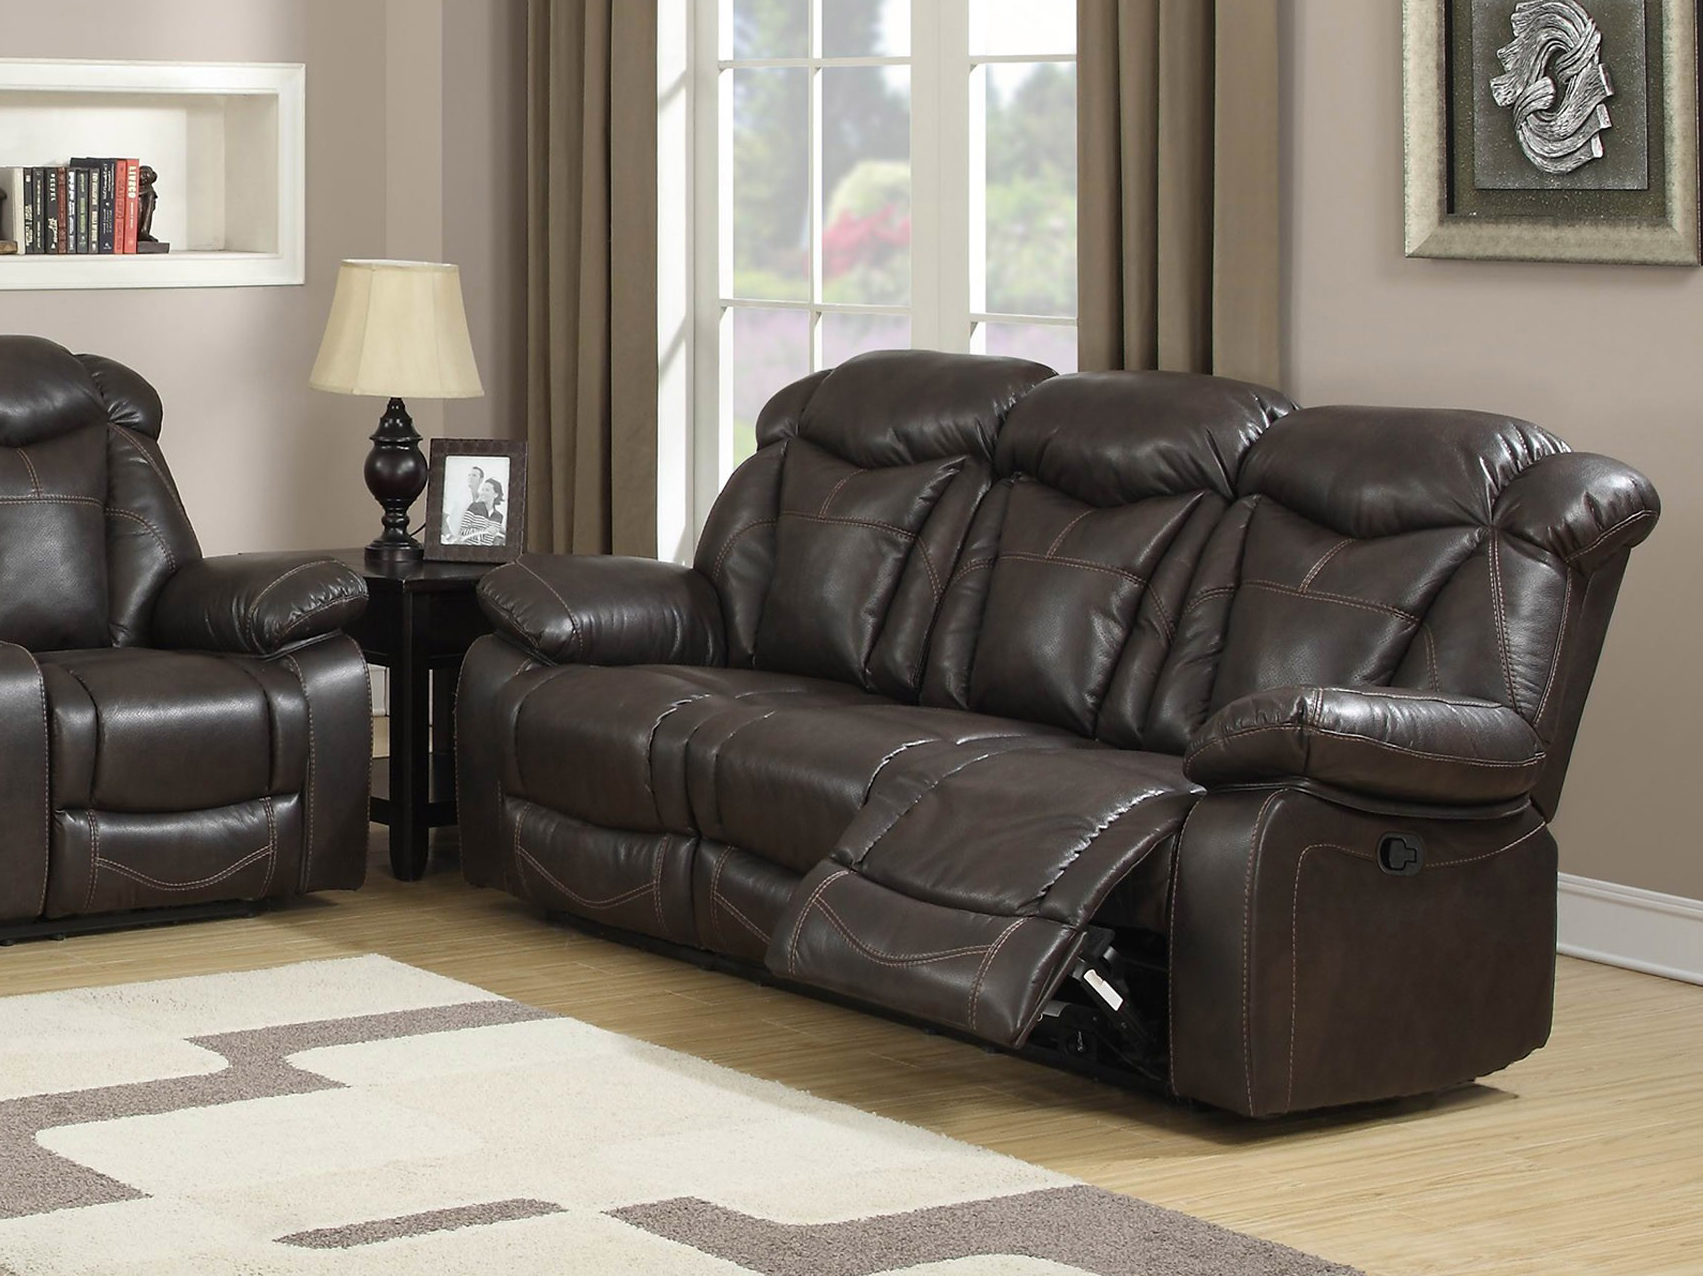 Sofa Otto Shop For Affordable Home Furniture Decor Outdoors And More